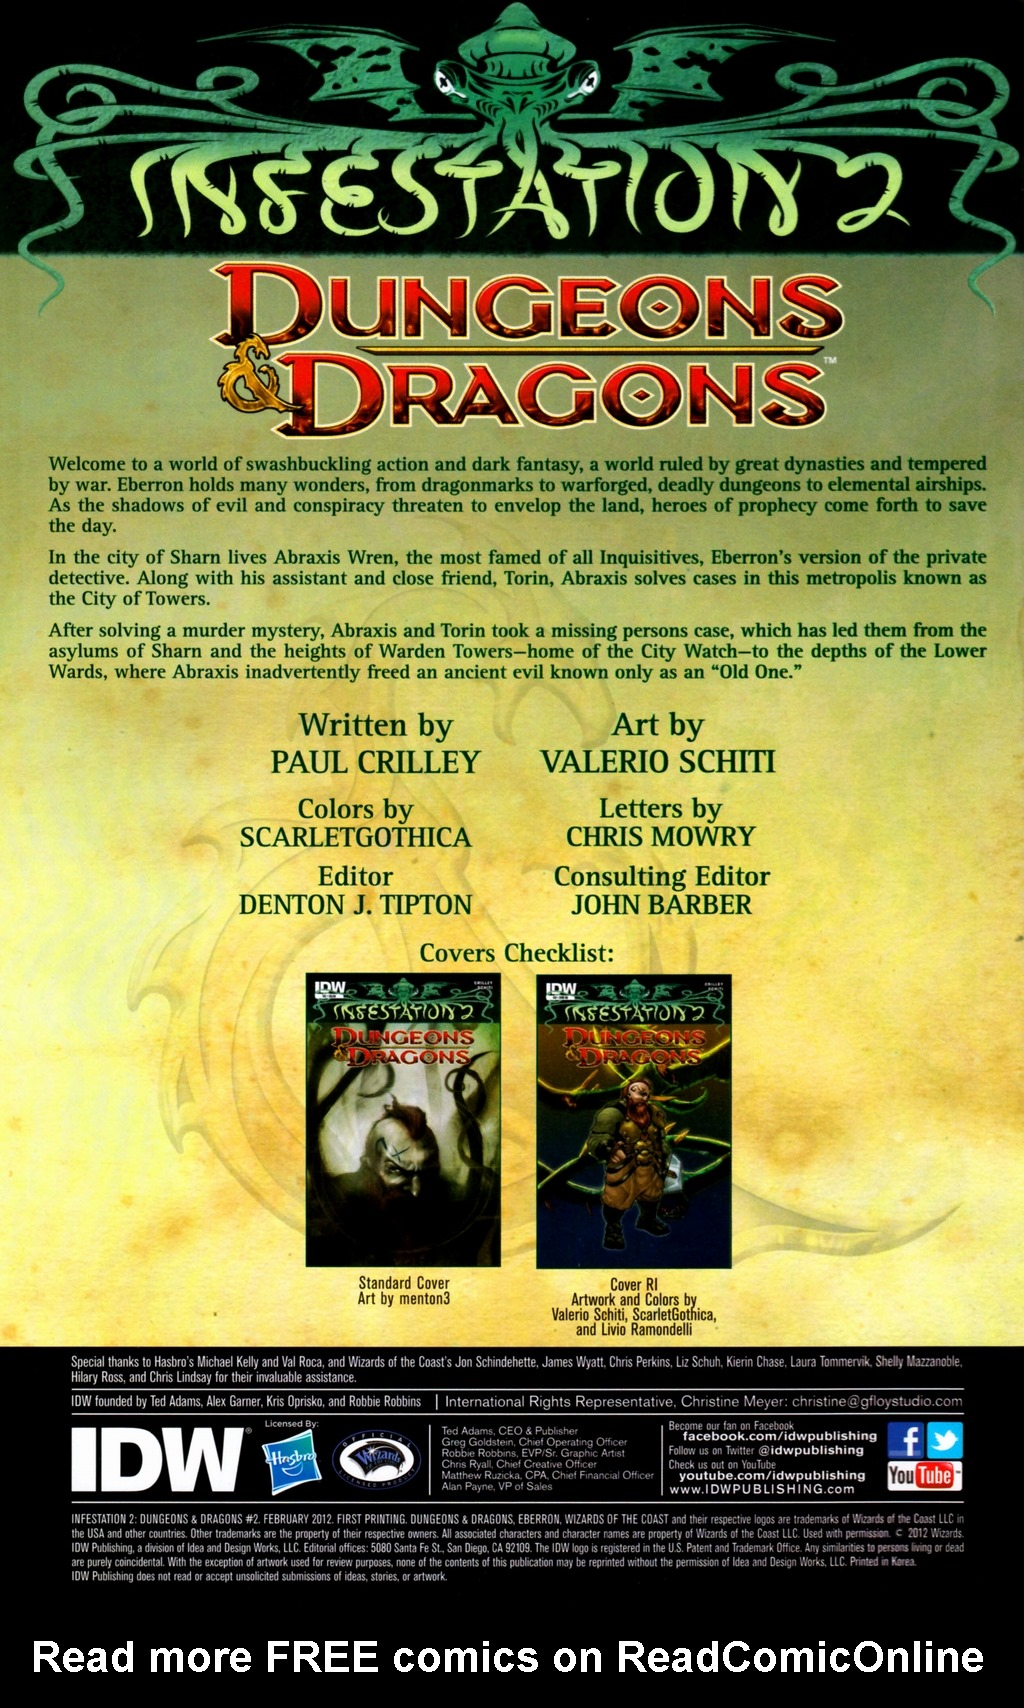 Read online Infestation 2: Dungeons & Dragons comic -  Issue #2 - 2